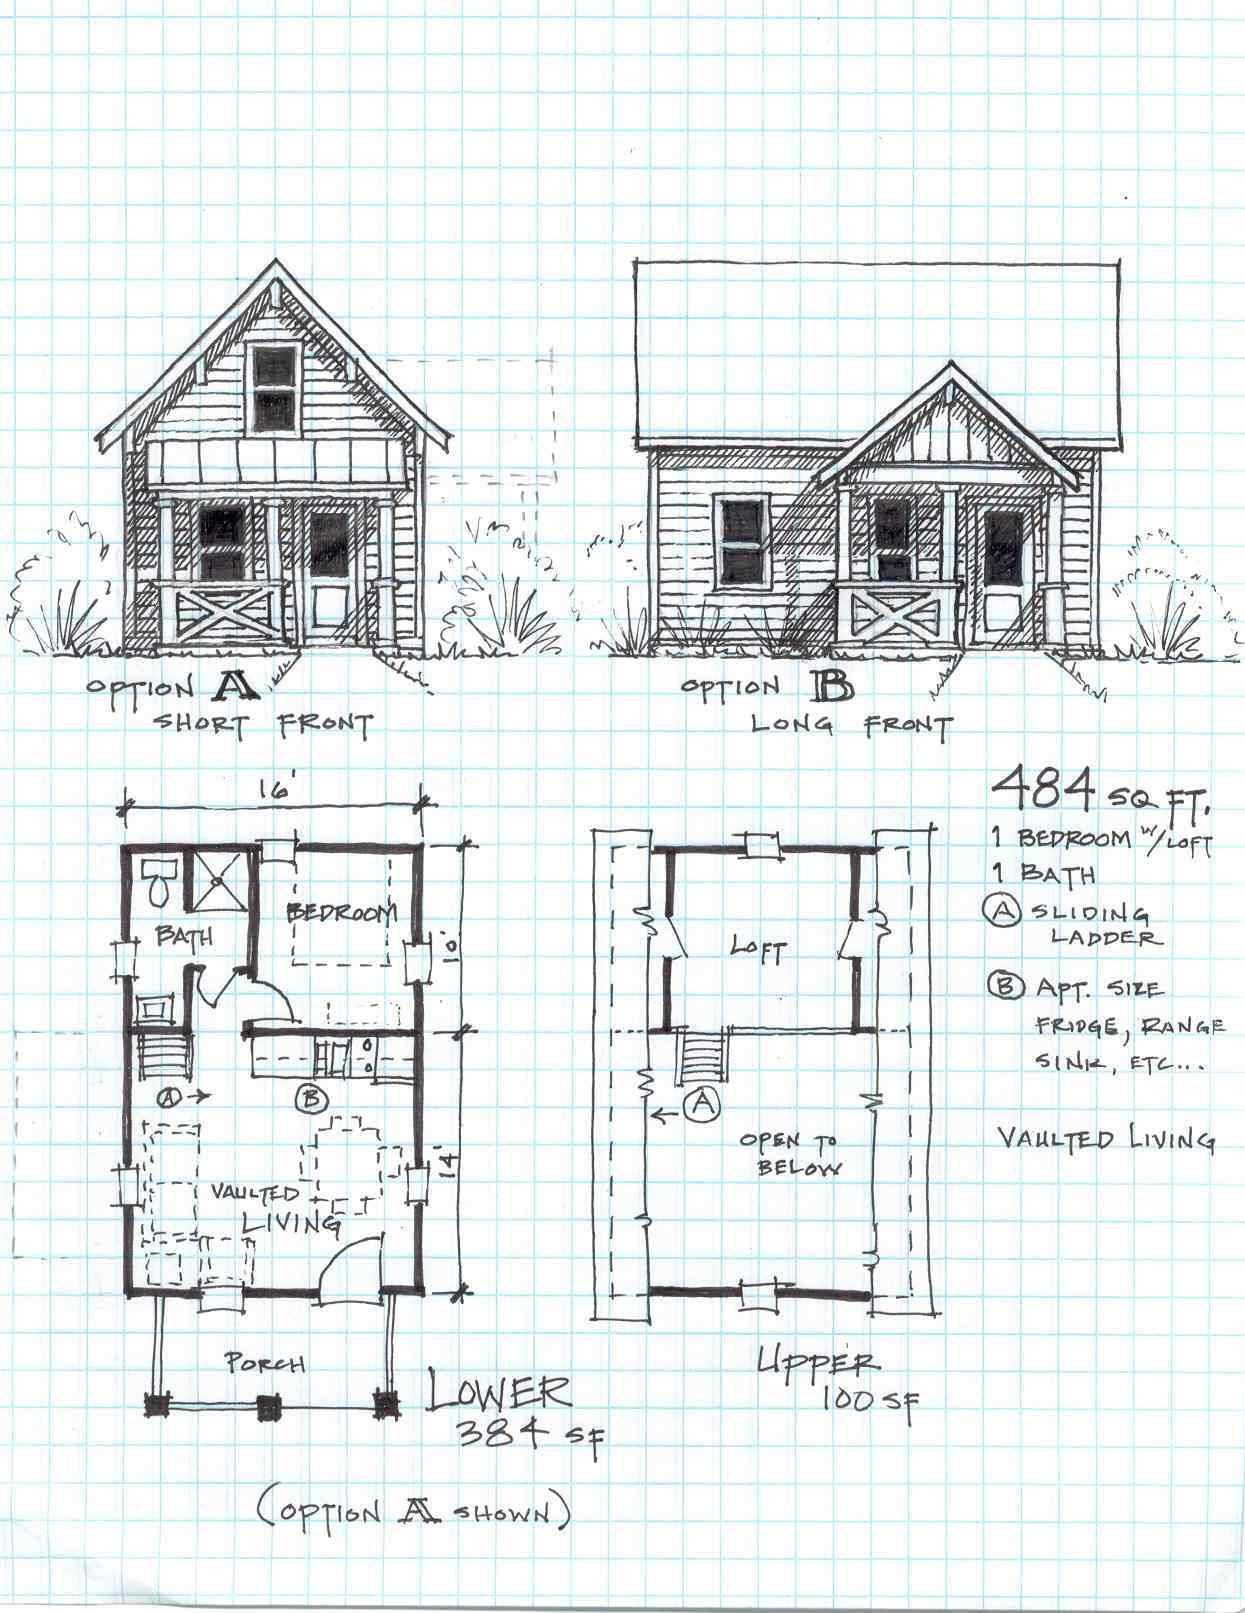 Small Cabin Design Ideas steel cabin design in the woods 5jpg 1000 Ideas About Small Cabin Plans On Pinterest Cabin Plans Small Cabins And Cabin Plans With Loft